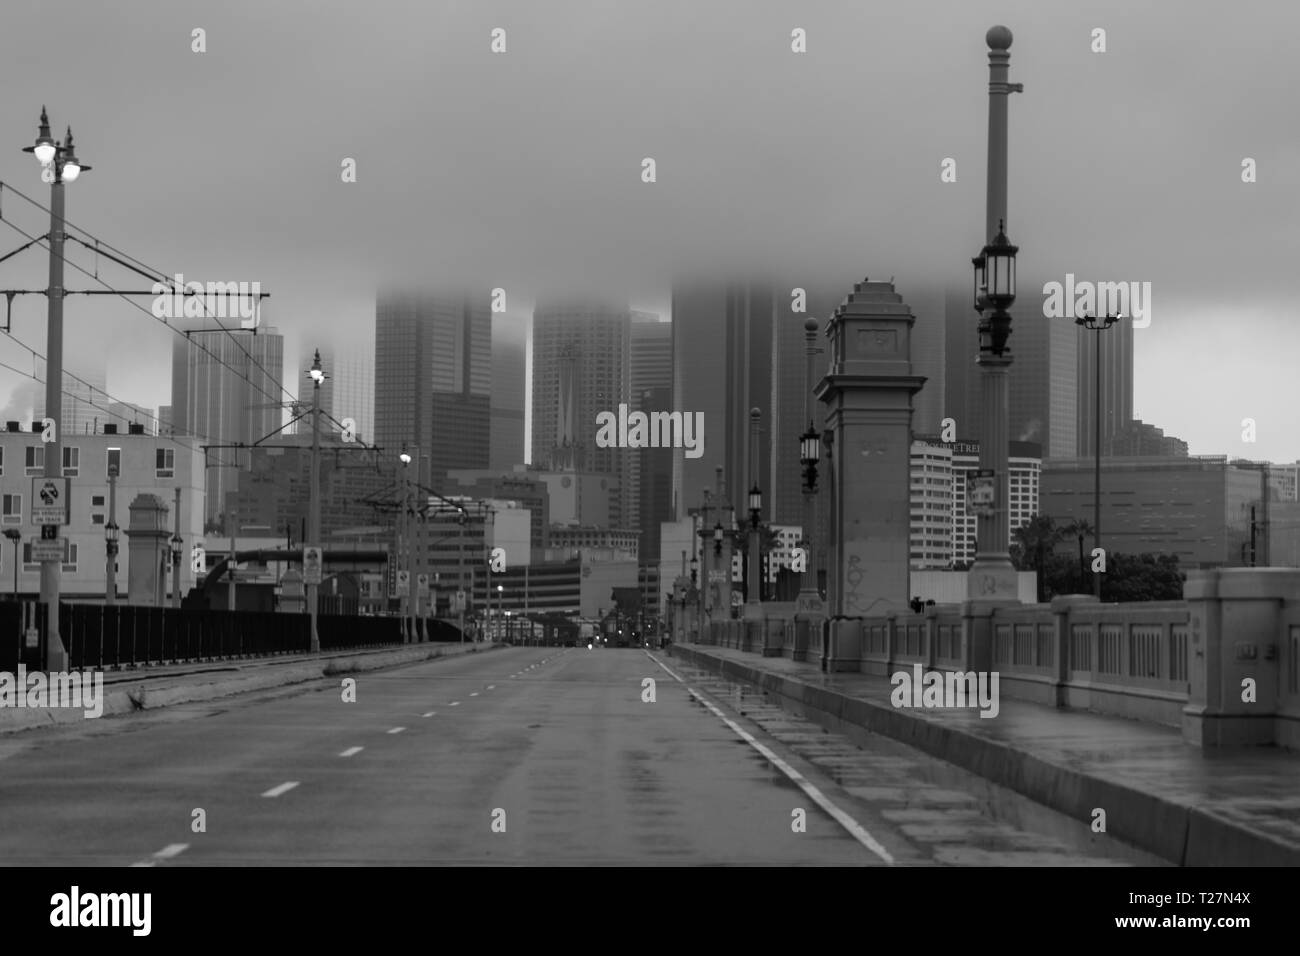 FEB 2, 2019 - LA, CA USA - Los Angeles under thick blanket of clouds from east side LA, CA in black and white - Stock Image